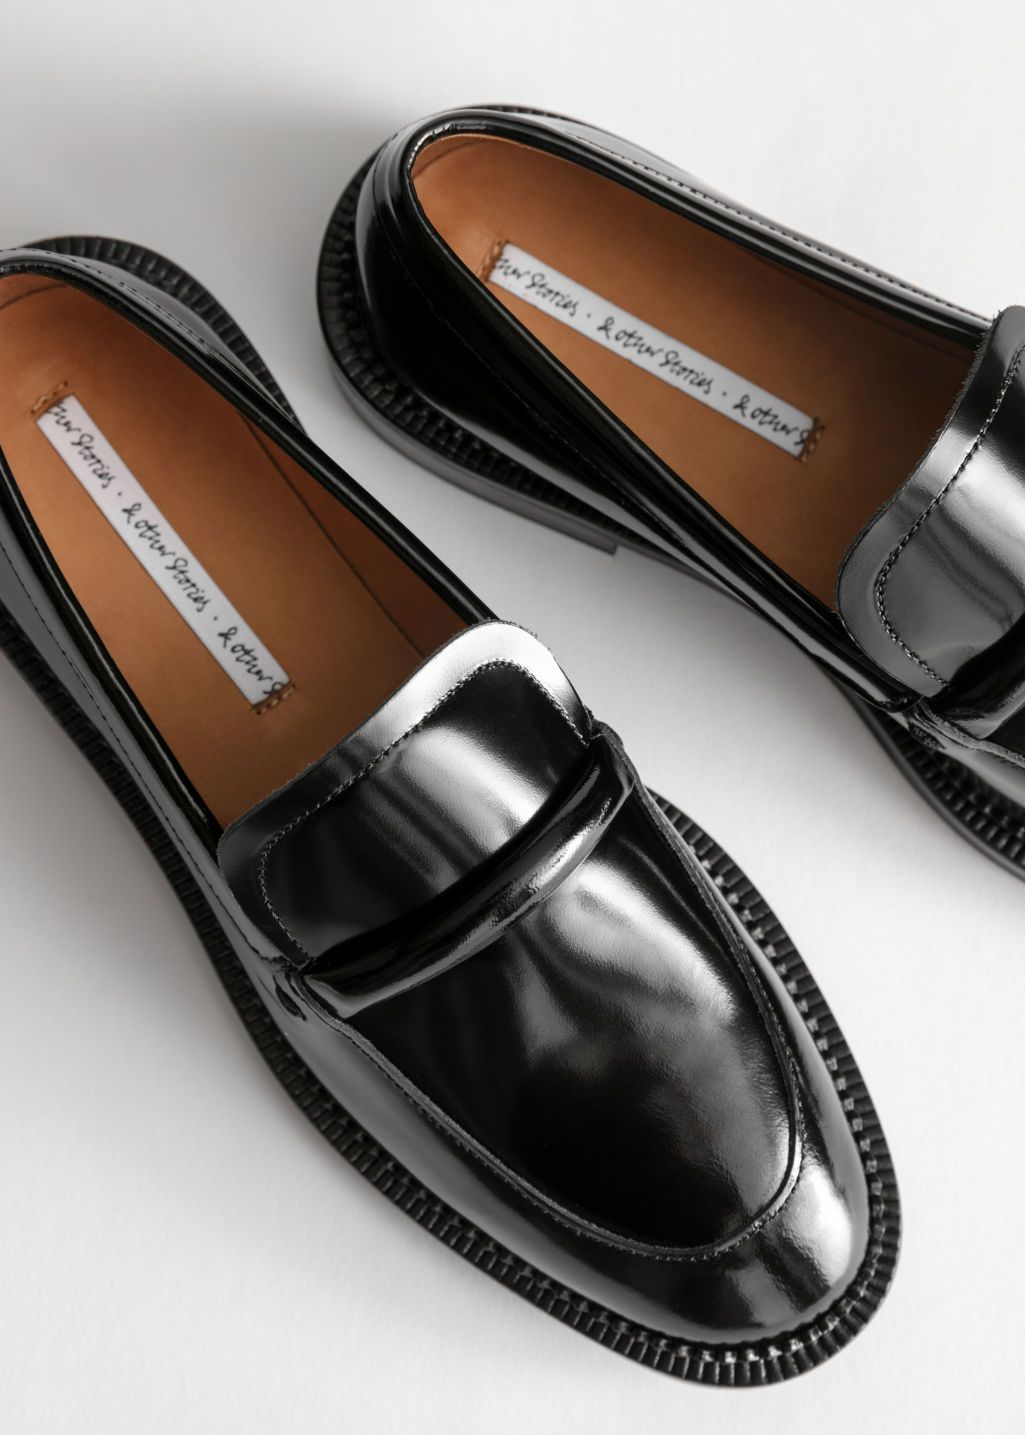 Leather Penny Loafers Loafers Penny Loafers Black Loafers Women [ 1435 x 1025 Pixel ]